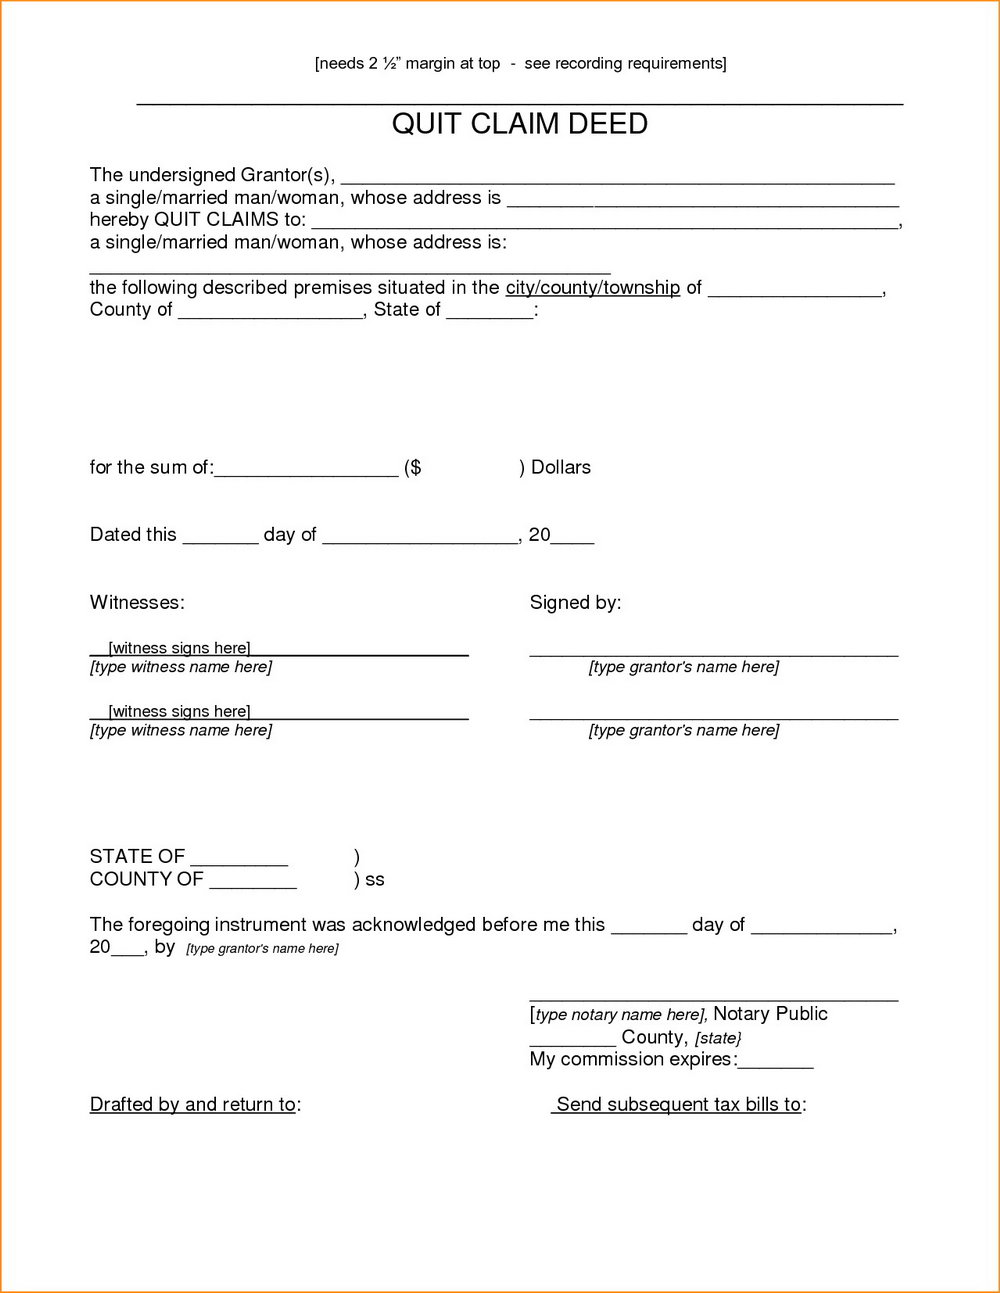 Quick Claim Deed Form Pinellas County Florida